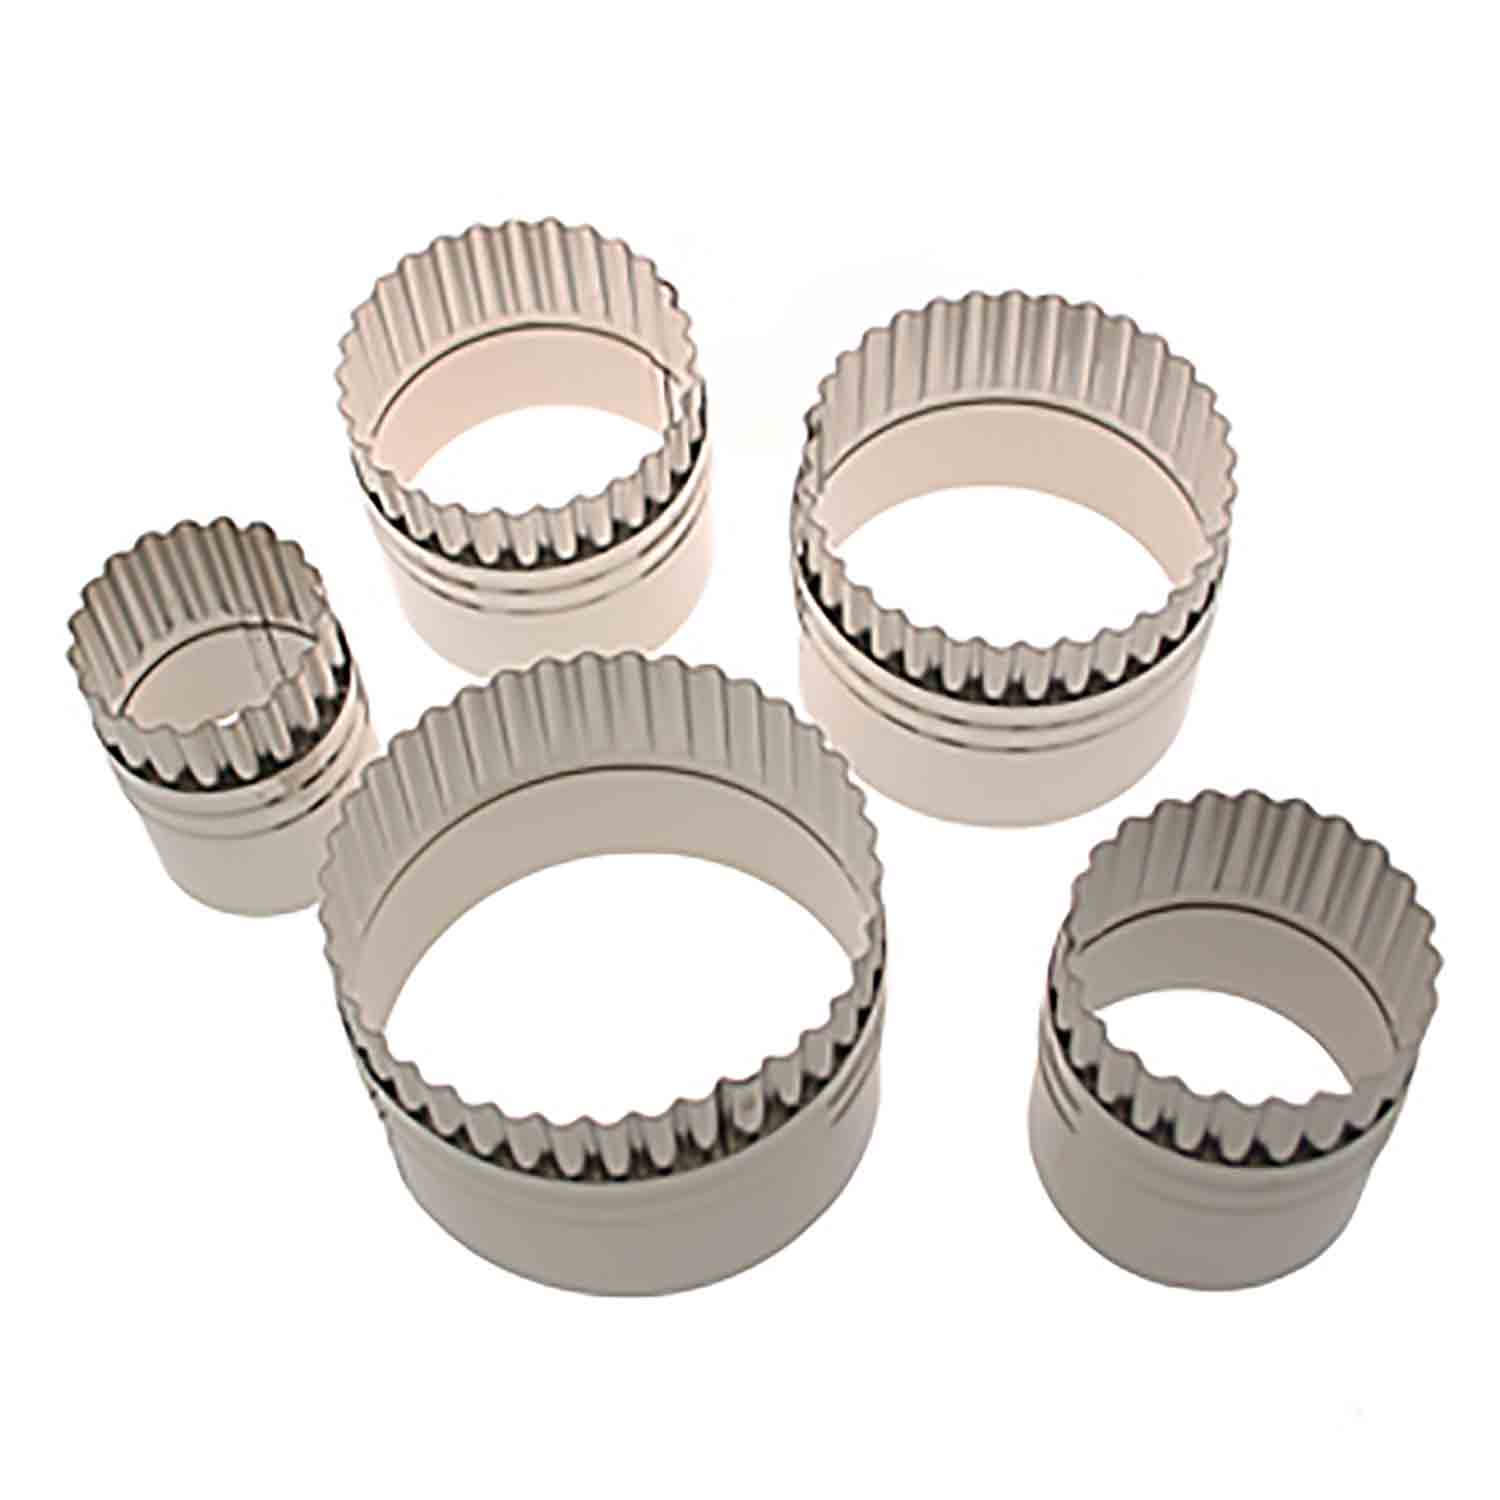 Straight & Fluted Round Cookie Cutter Set